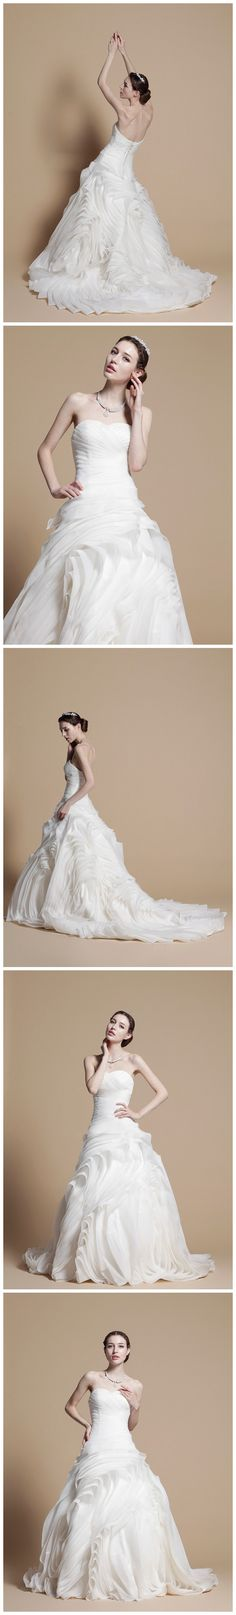 Gorgeous wedding dress!!